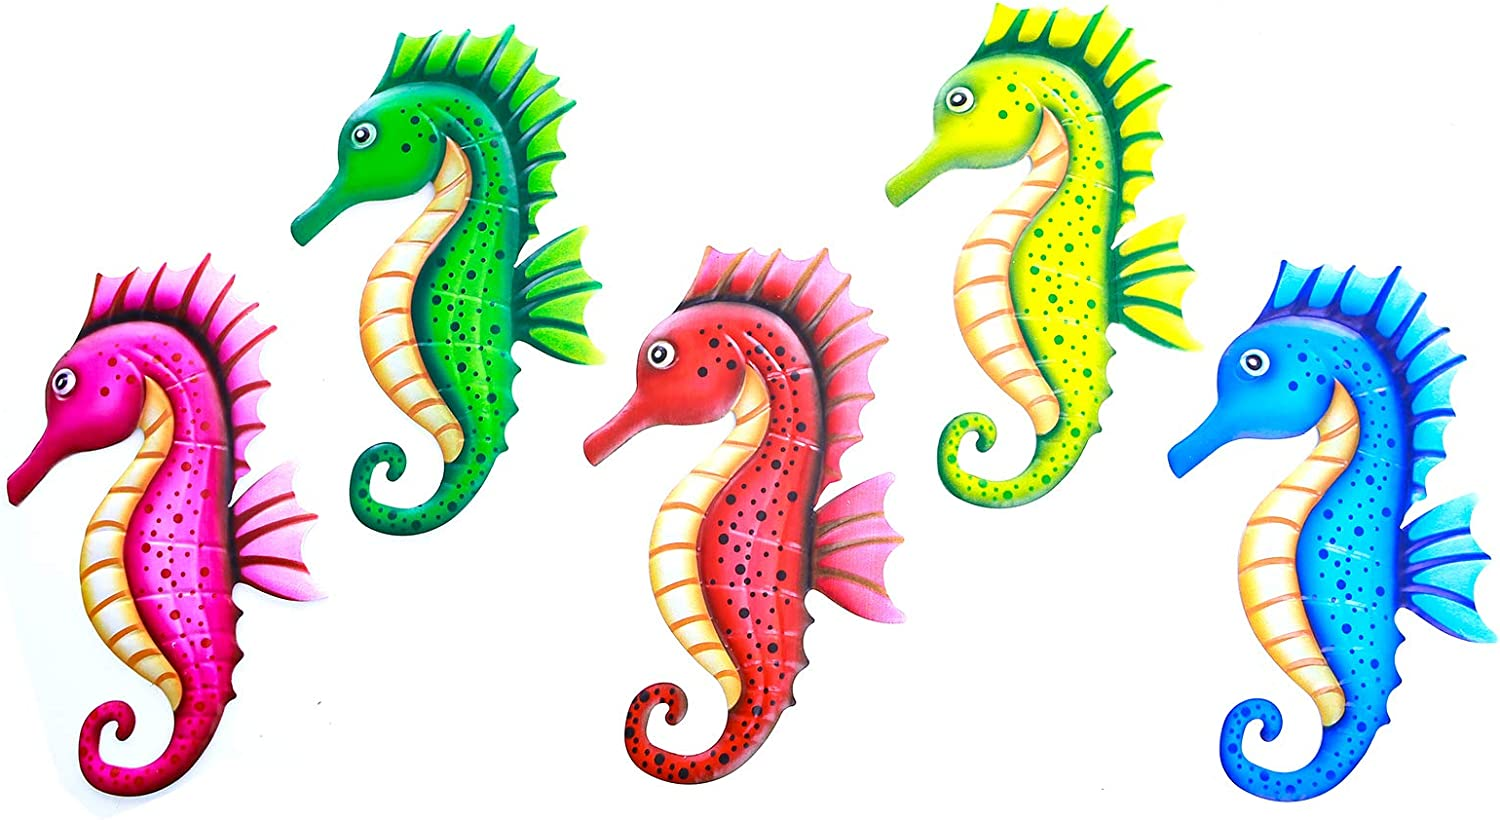 5 Pack Metal Seahorse Wall Decor Art Plaque Sculpture Hanging for Home Decor Porch Fence Garden(13.5 Inch x 8.5 Inch)